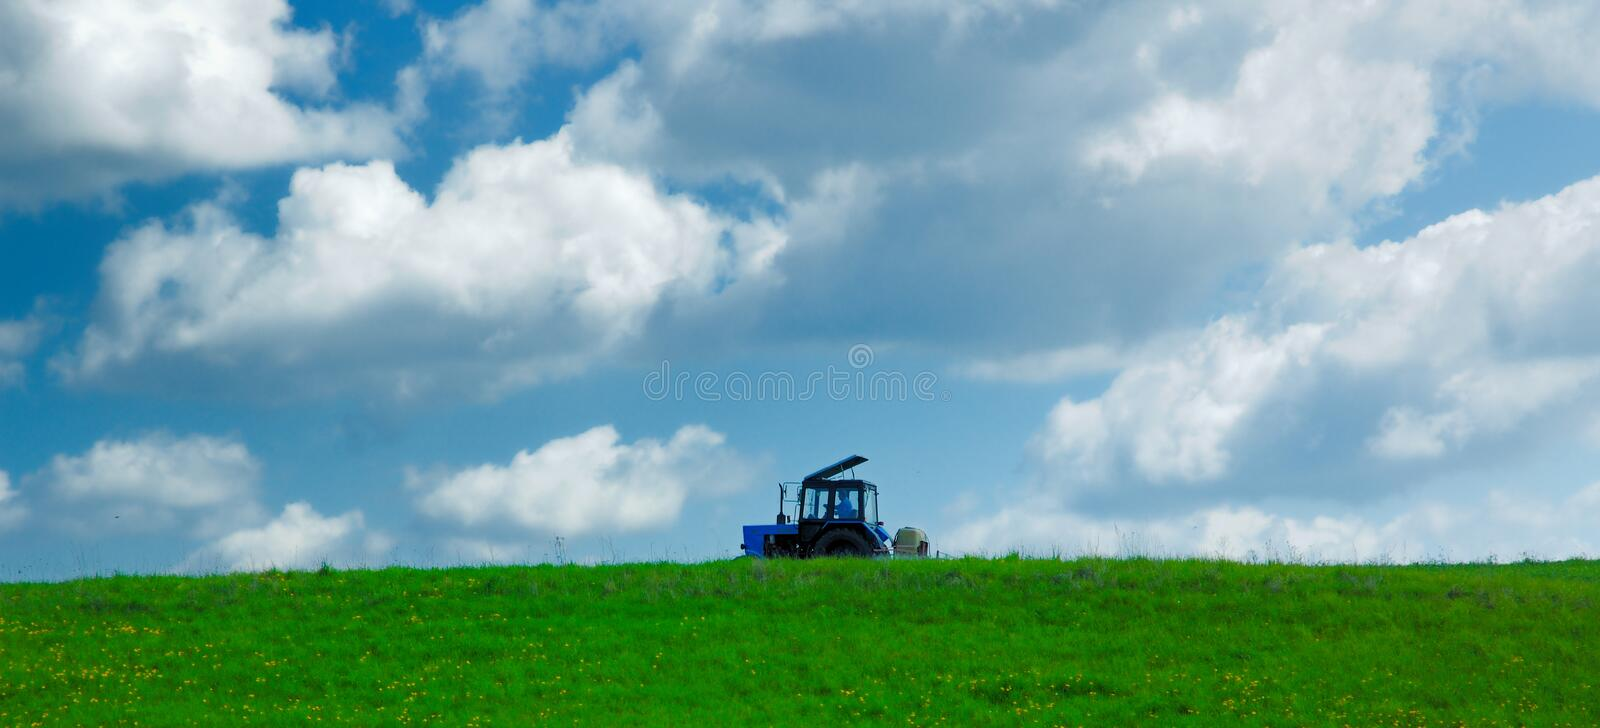 Agrimotor on sky Green Field stock photo